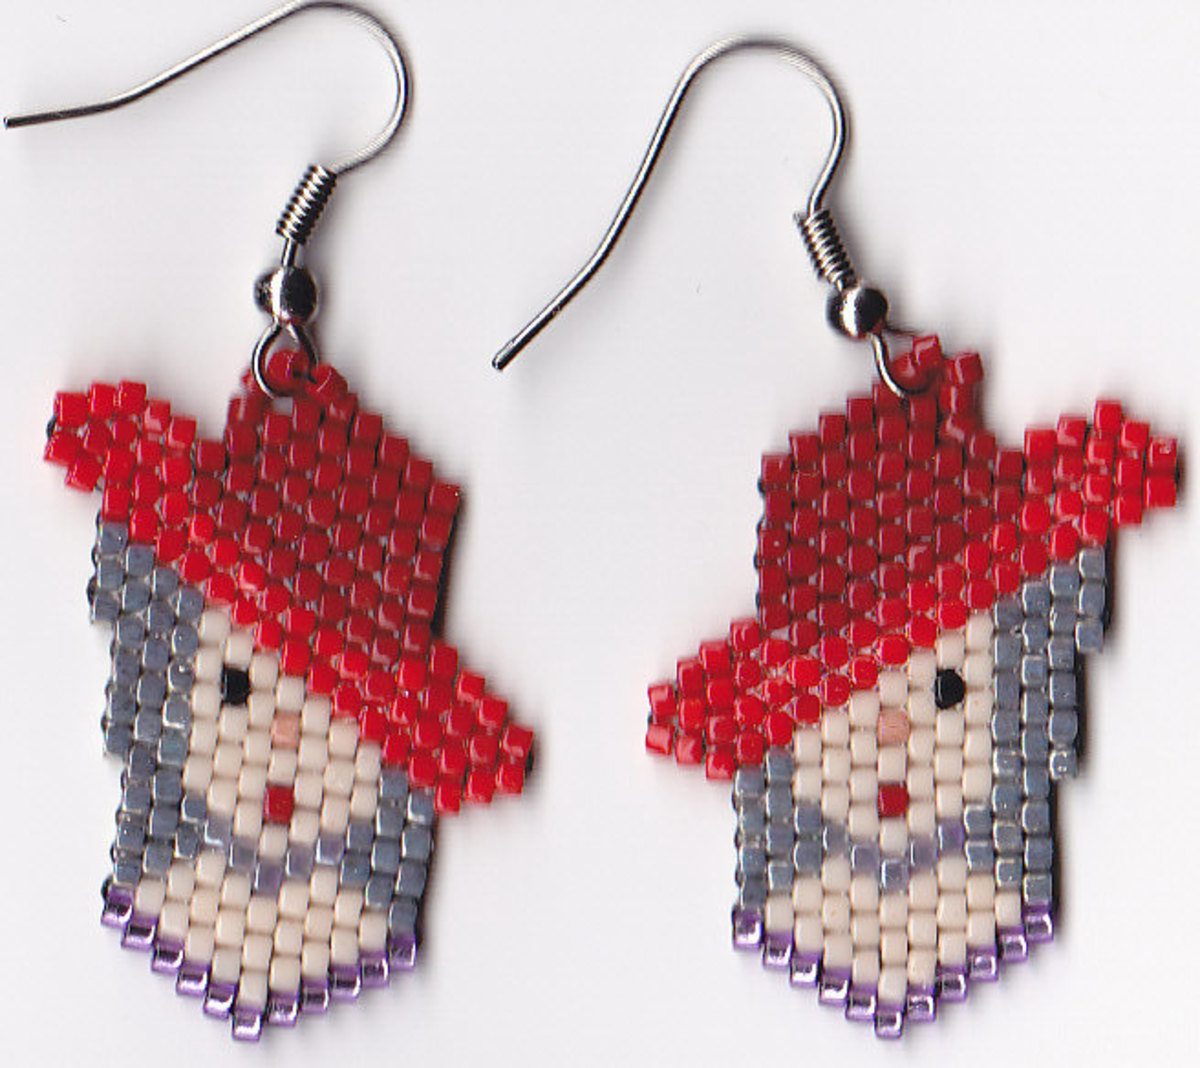 Red Hat Society earrings I beaded with Delica beads, adapted from a pattern in this book